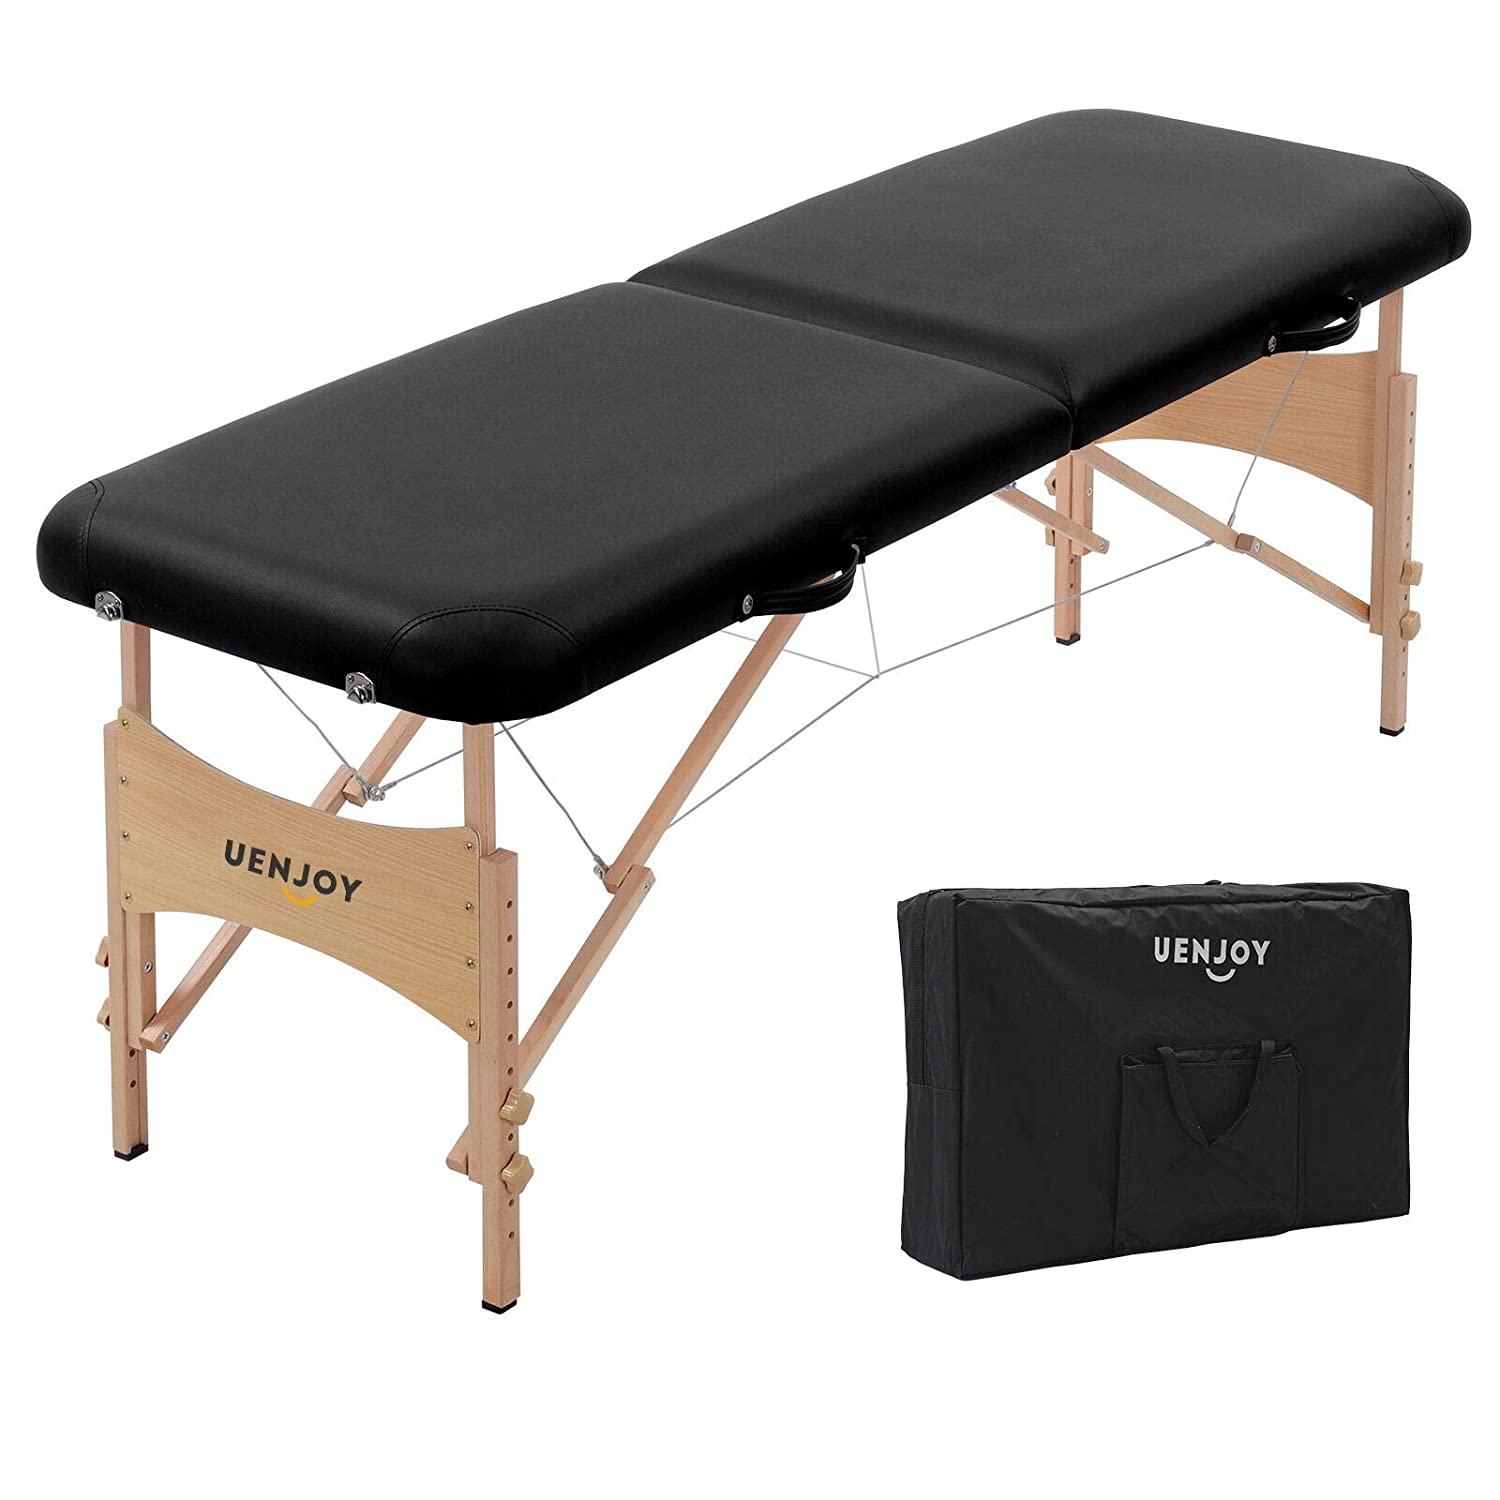 Uenjoy Massage Bed 72 Professional Folding Massage Table 2 Fold, Basic Portable, Black